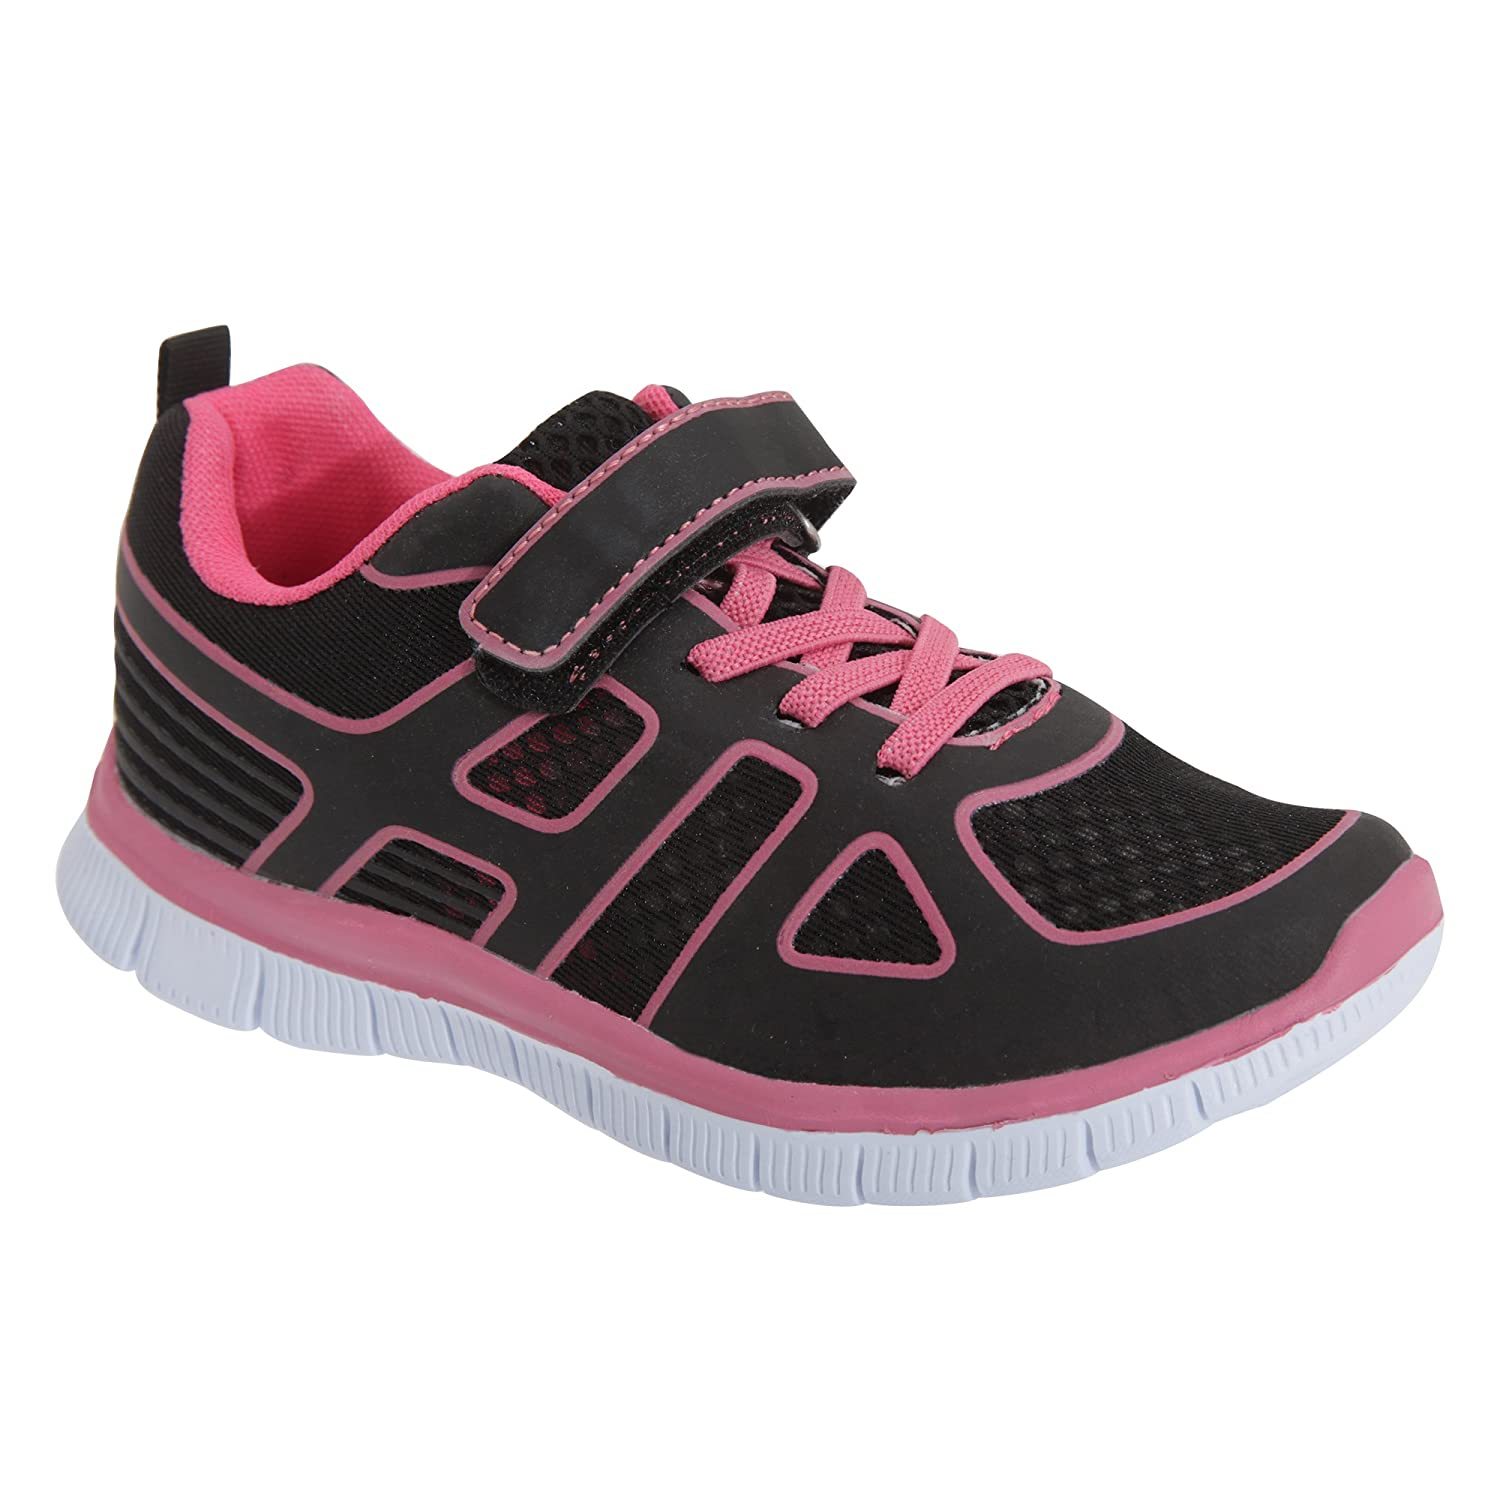 Dek Childrens/Kids Glow Lite Touch Fastening and Elasticated Lace Trainers